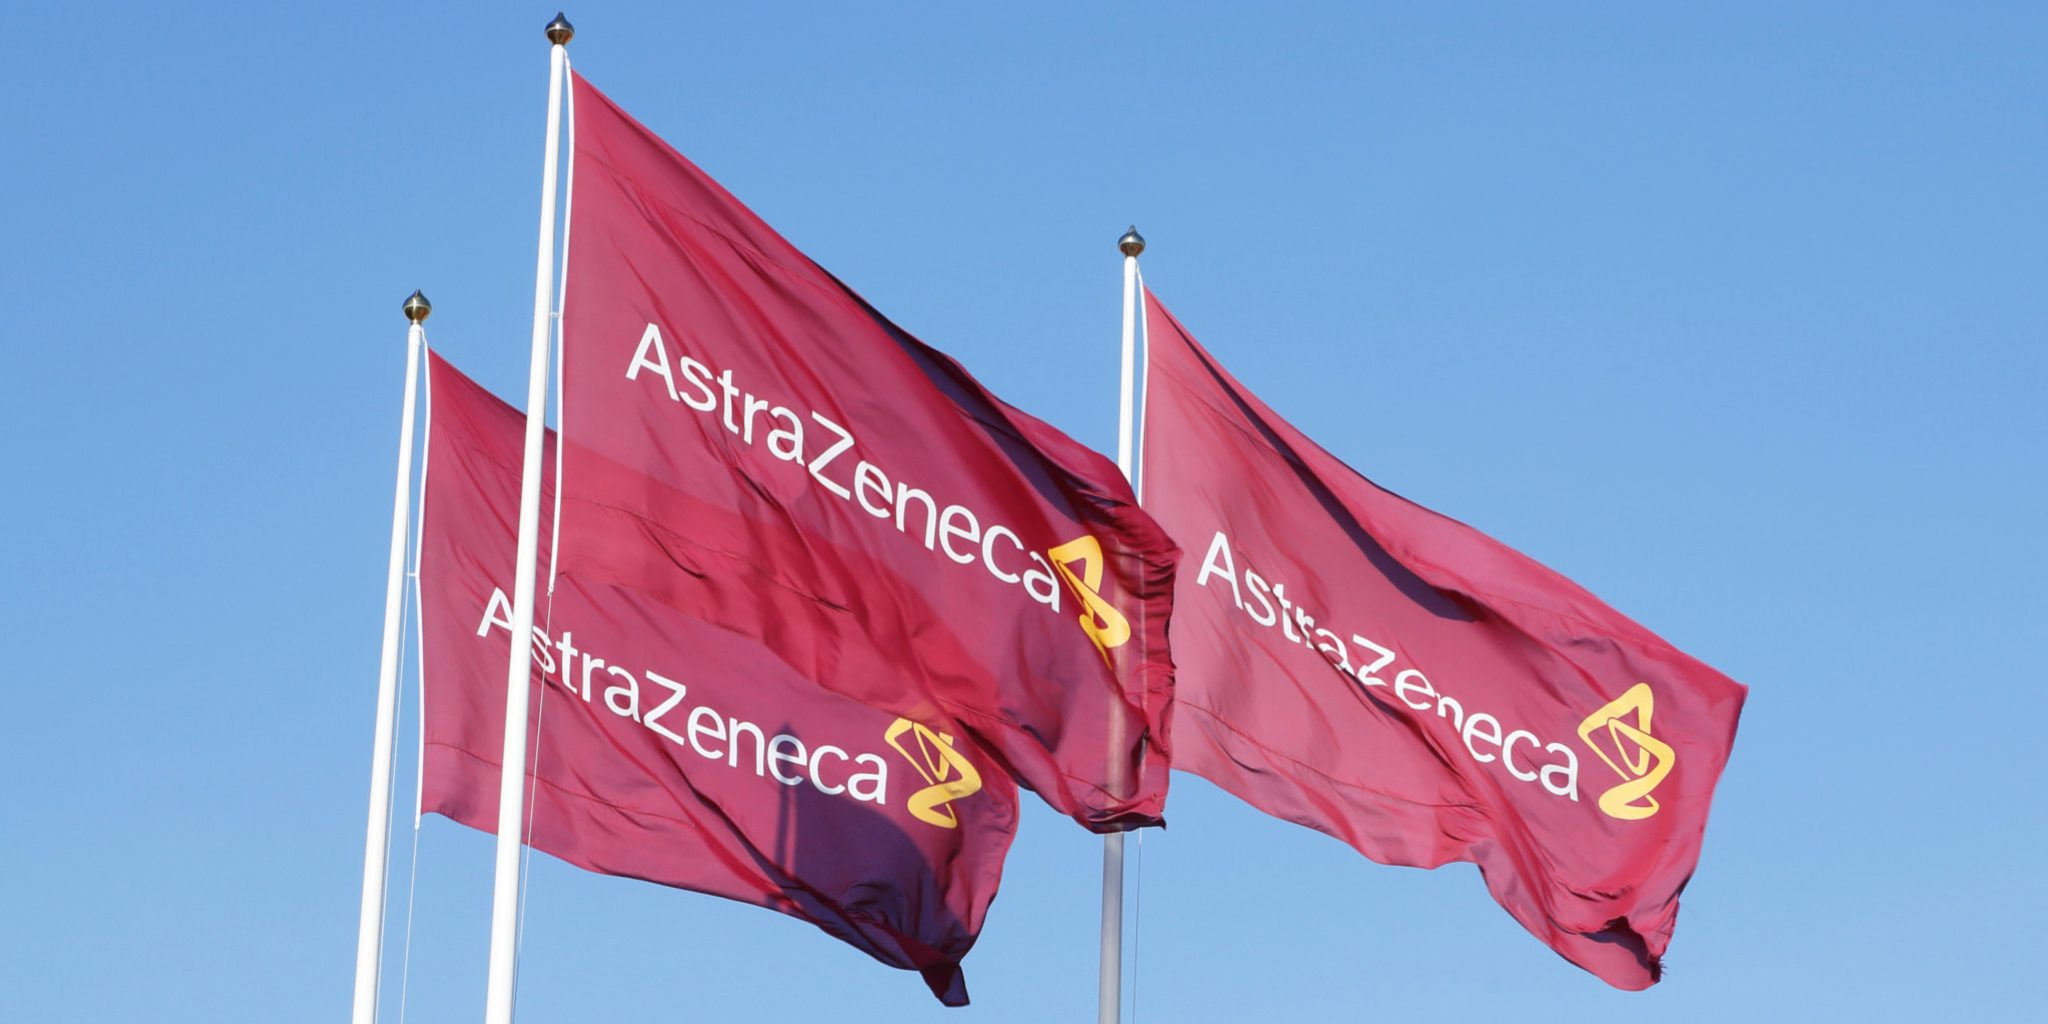 AstraZeneca Receives FDA Approval for Breast Cancer Treatment